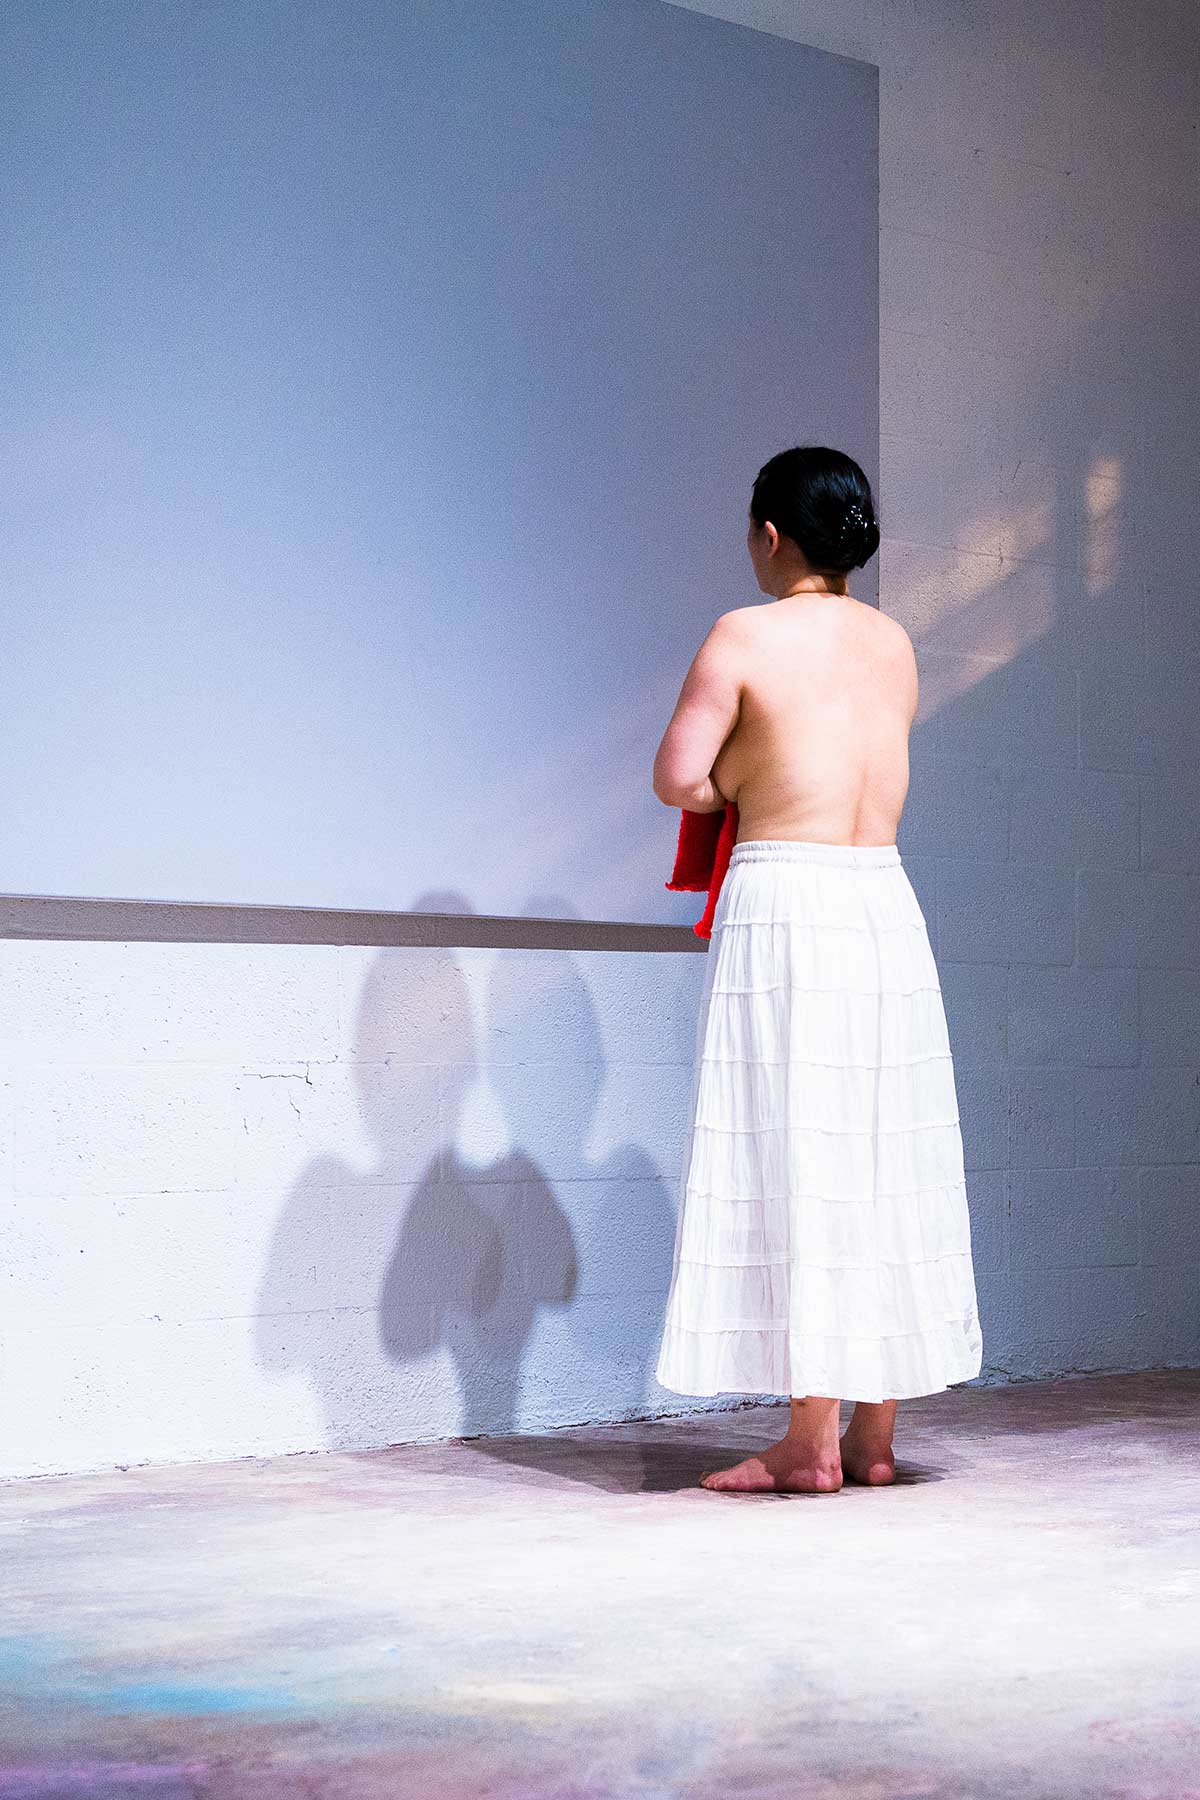 Chun Hua Catherine Dong's performance at Miami Performance International Festival in 2016